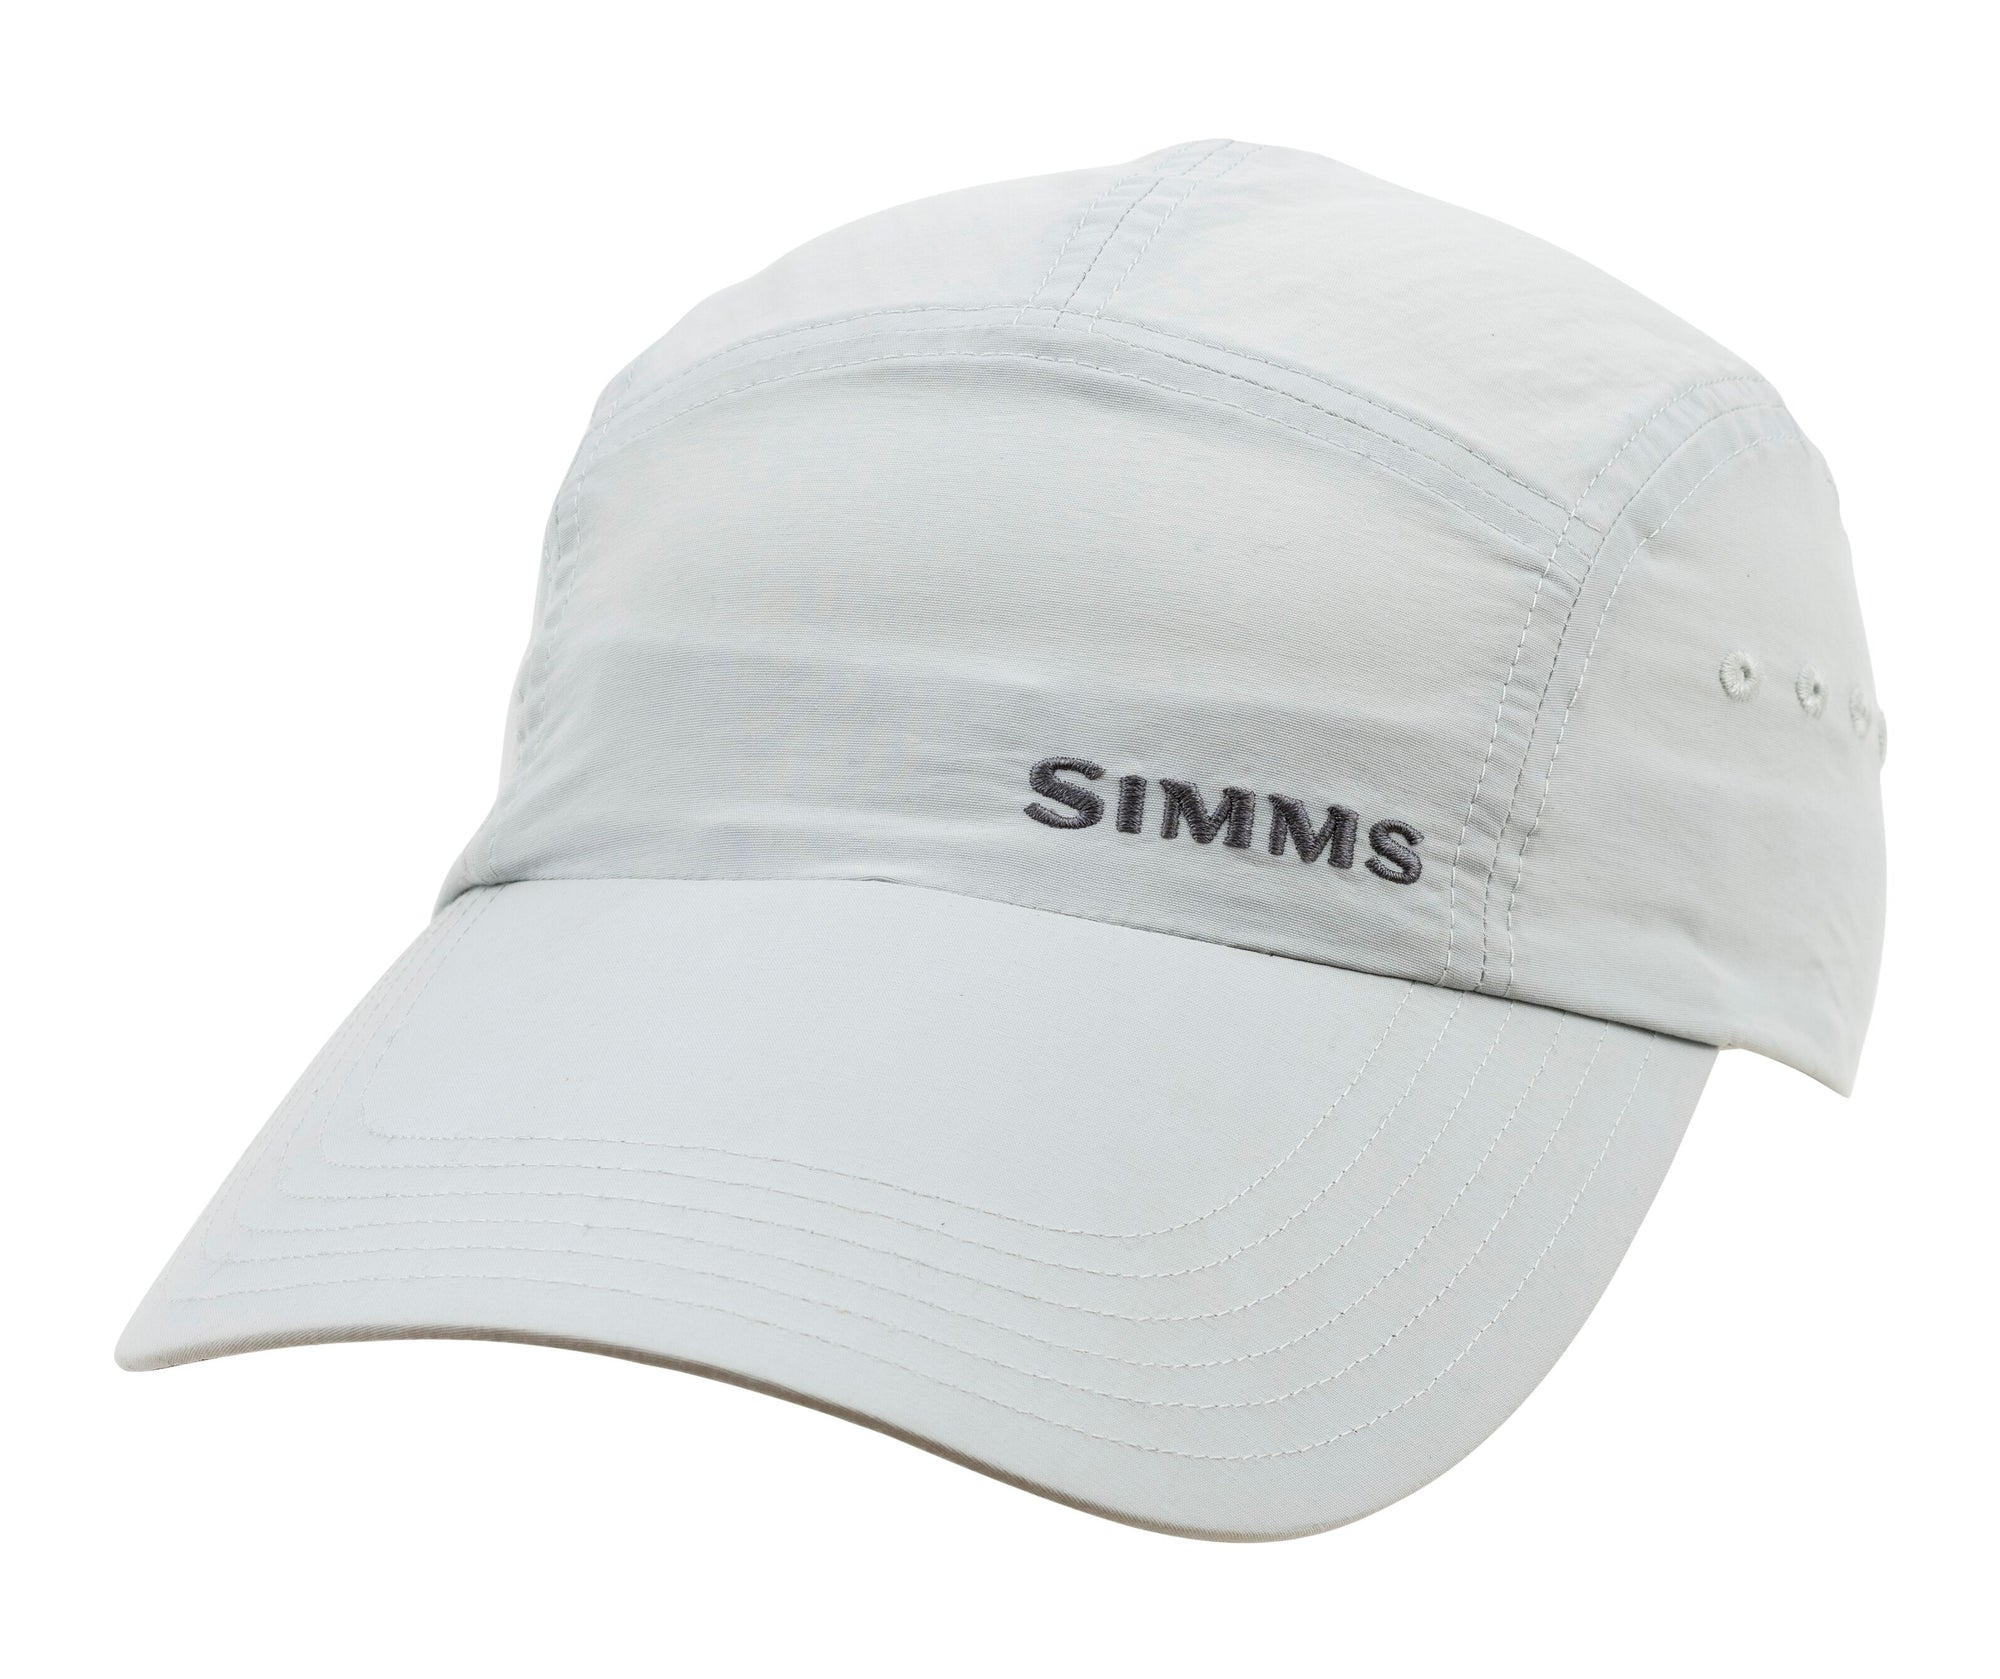 Simms Superlight Flats Long Brimmed Cap - Sterling